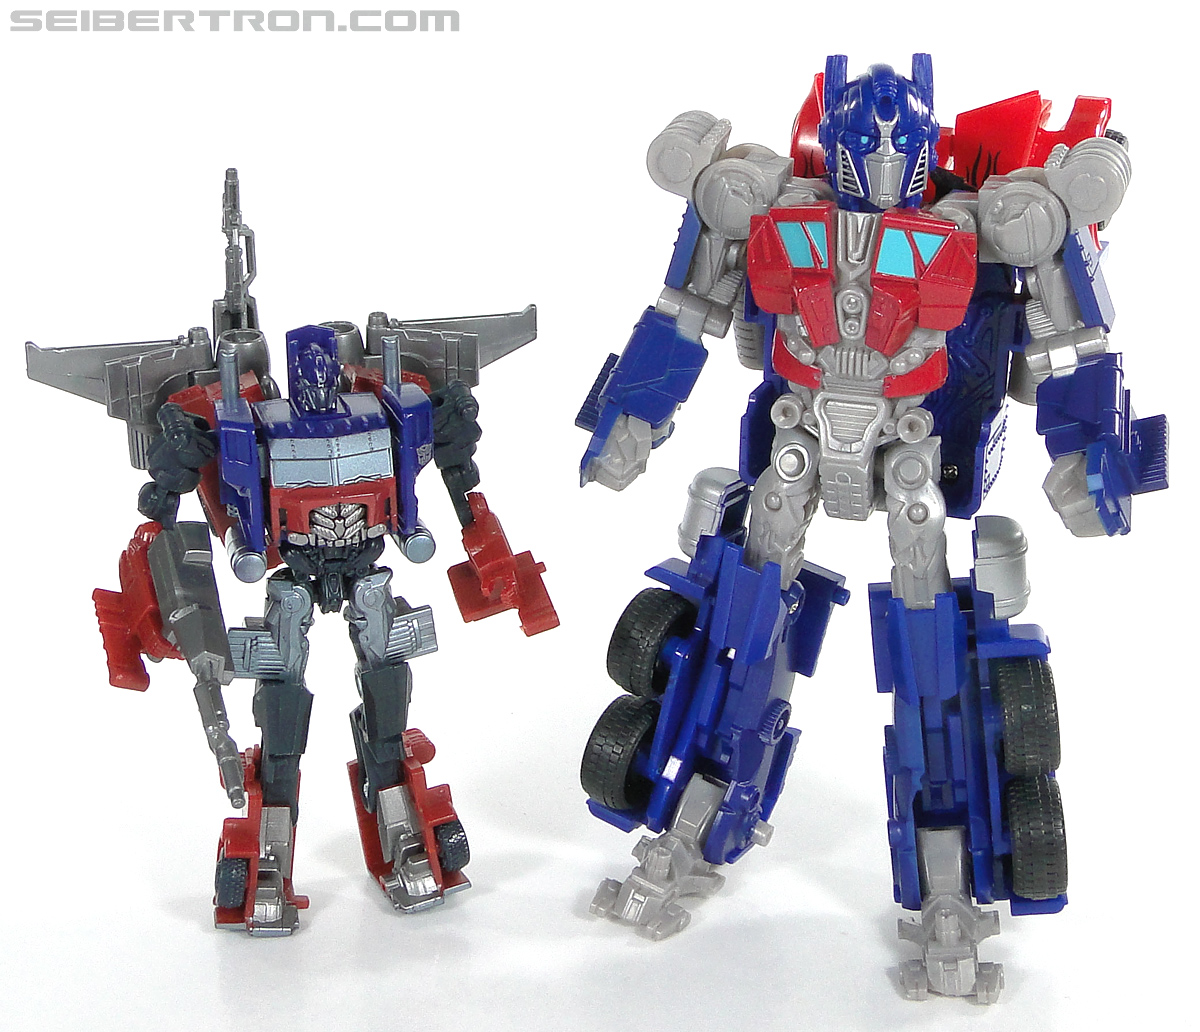 Transformers Dark of the Moon Optimus Prime (Image #192 of 235)